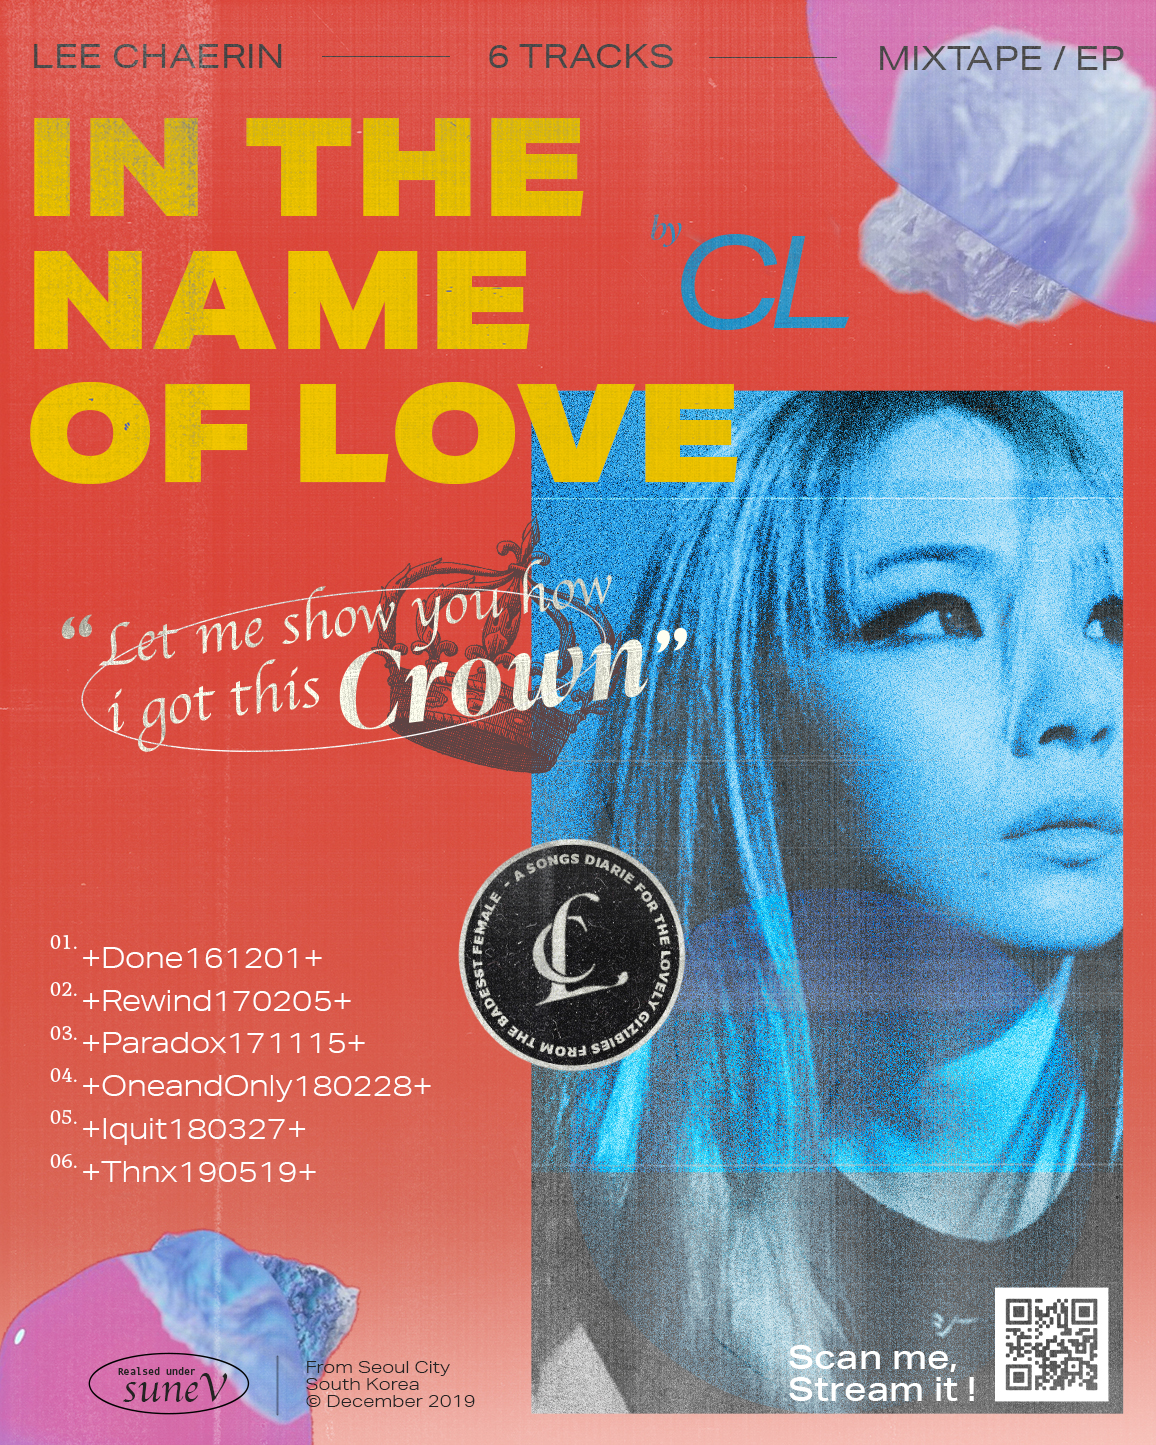 In the name of love – CL